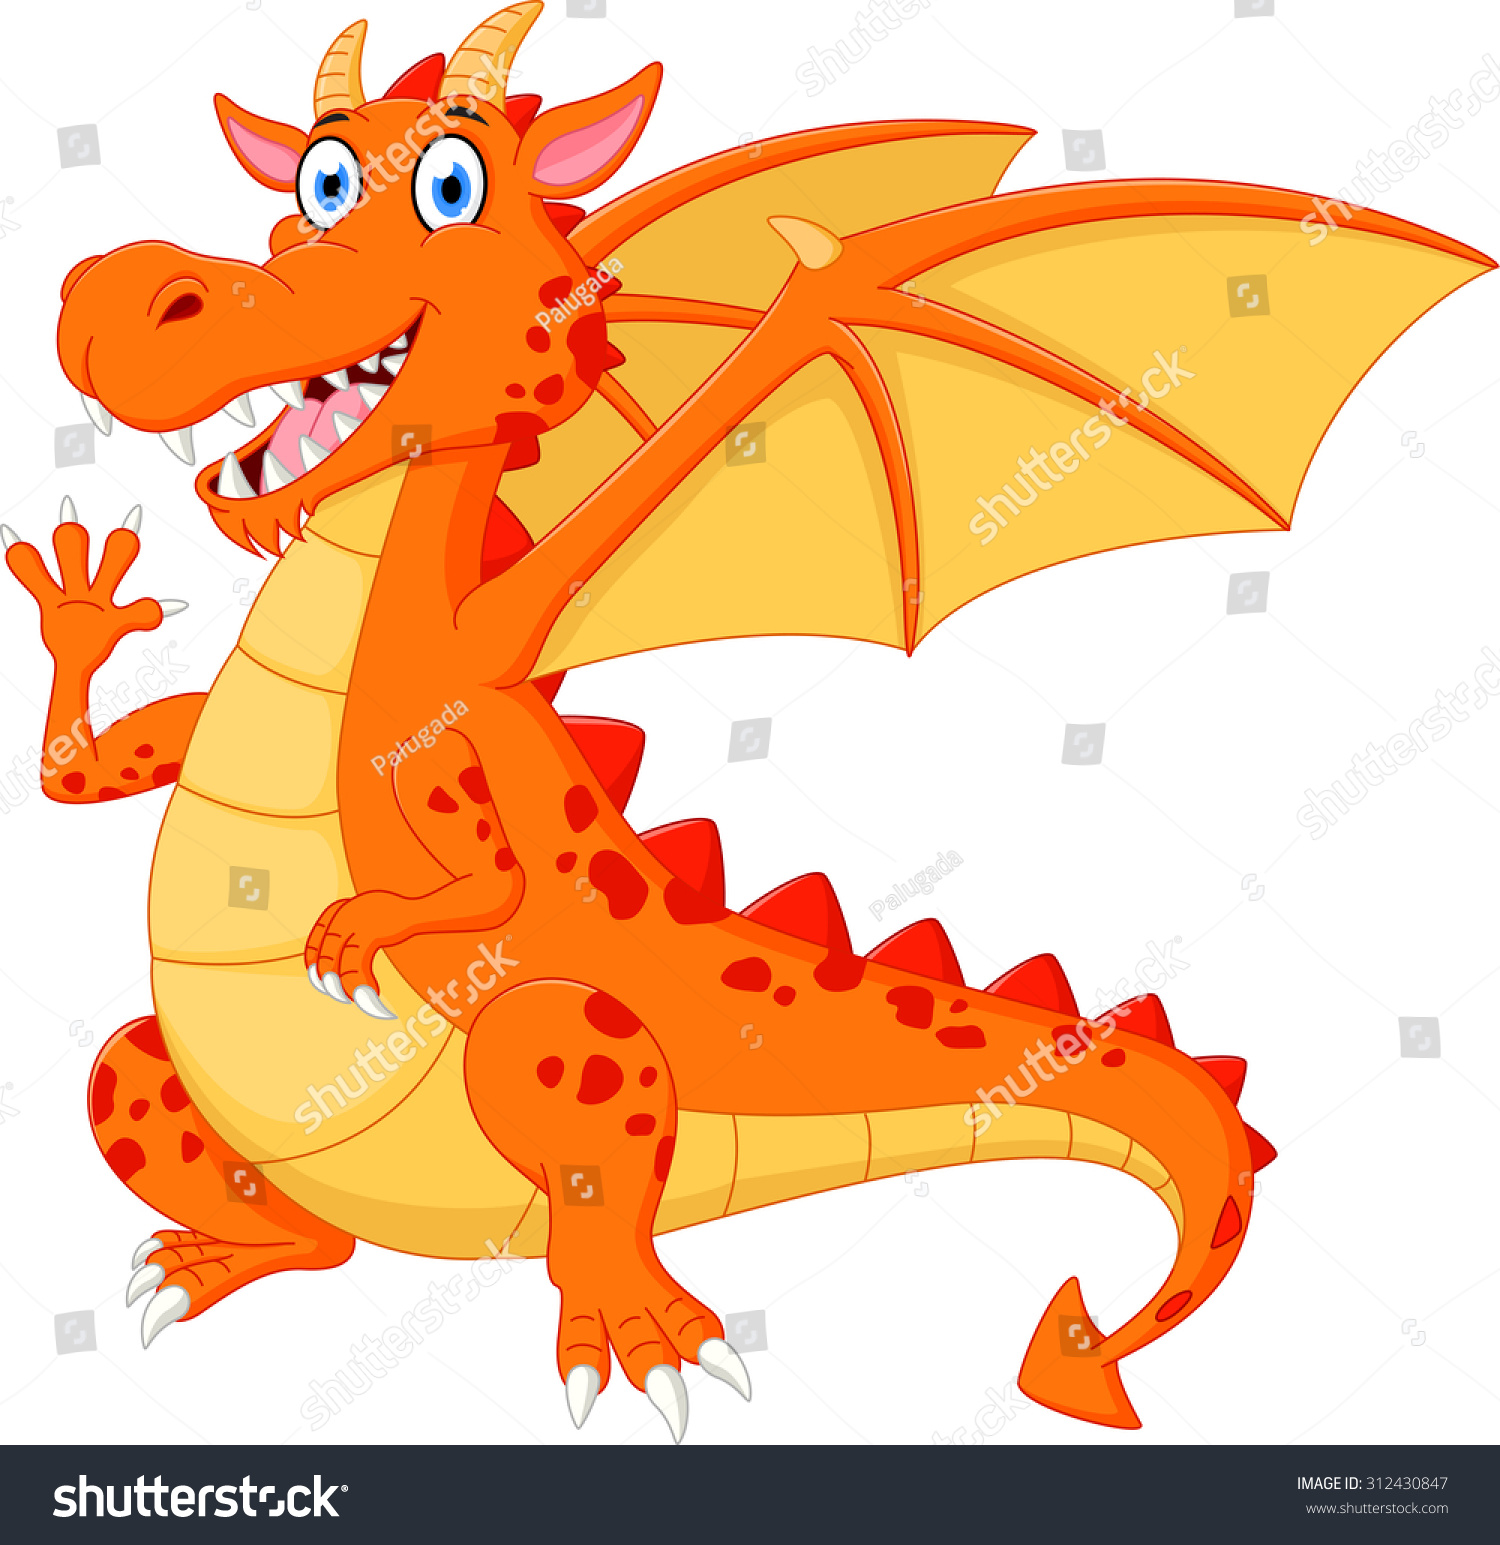 stock-photo-happy-dragon-cartoon-waving-